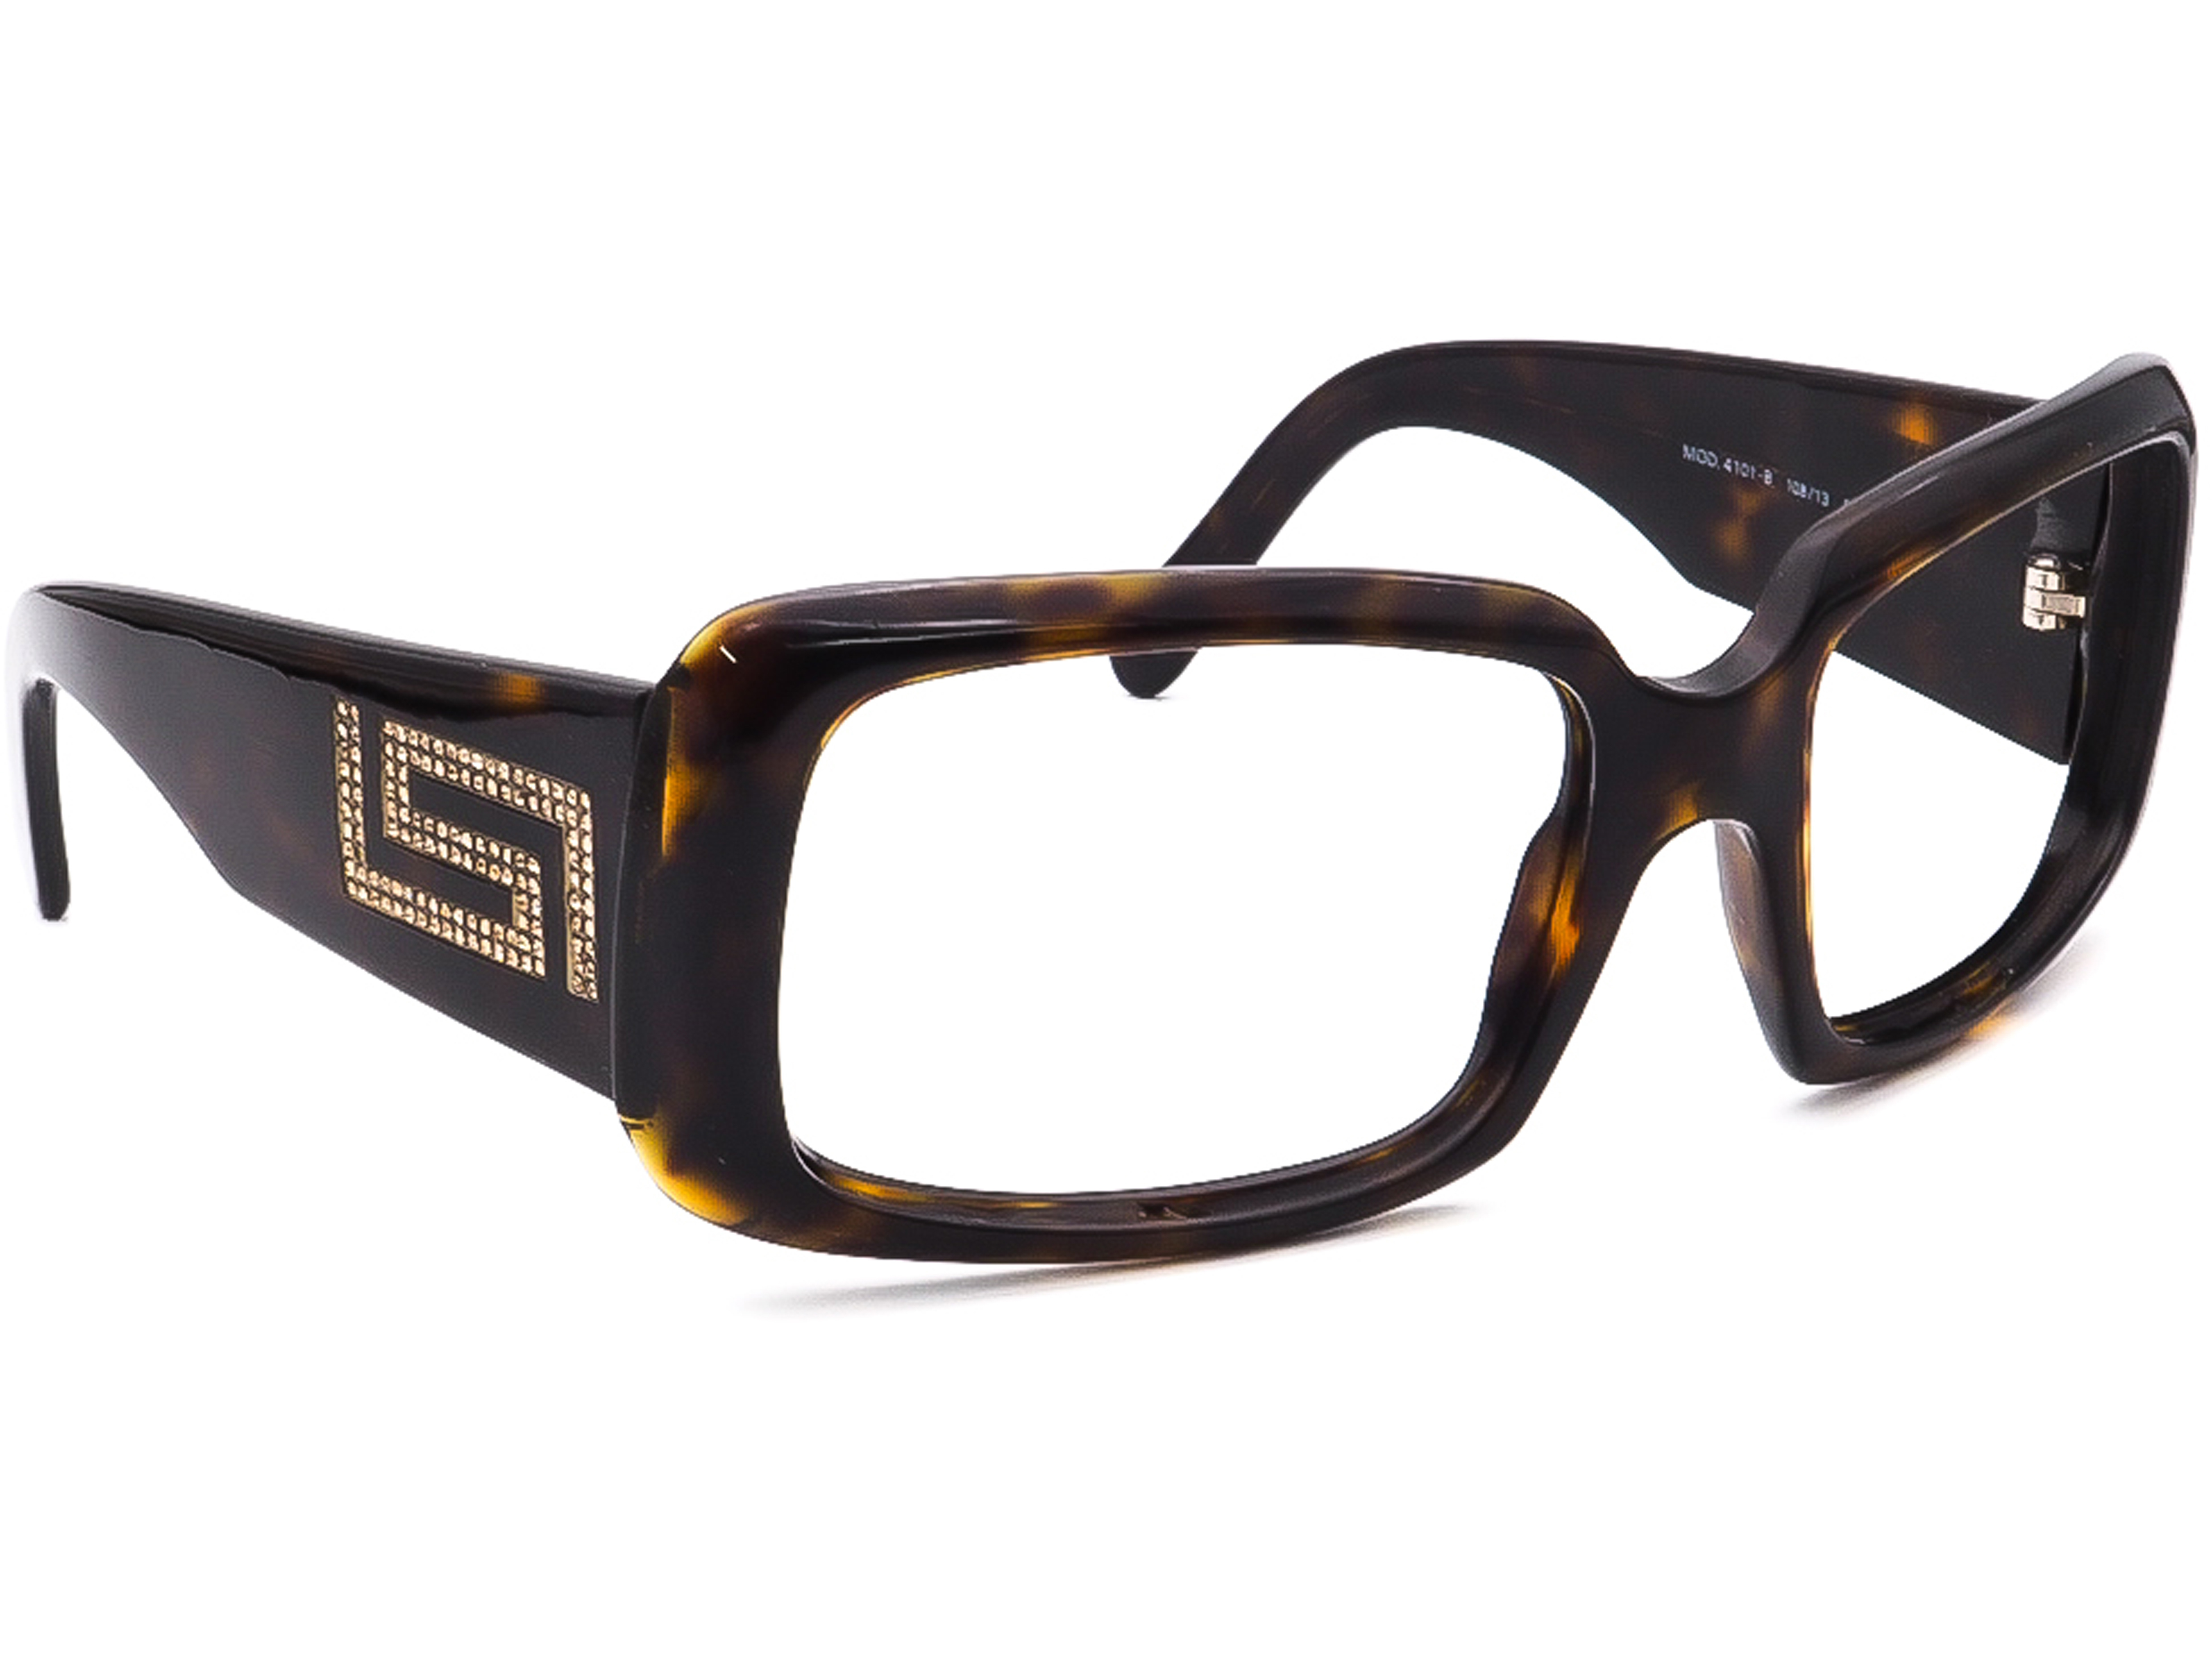 Versace MOD. 4101-B 108/13 Sunglasses Frame Only